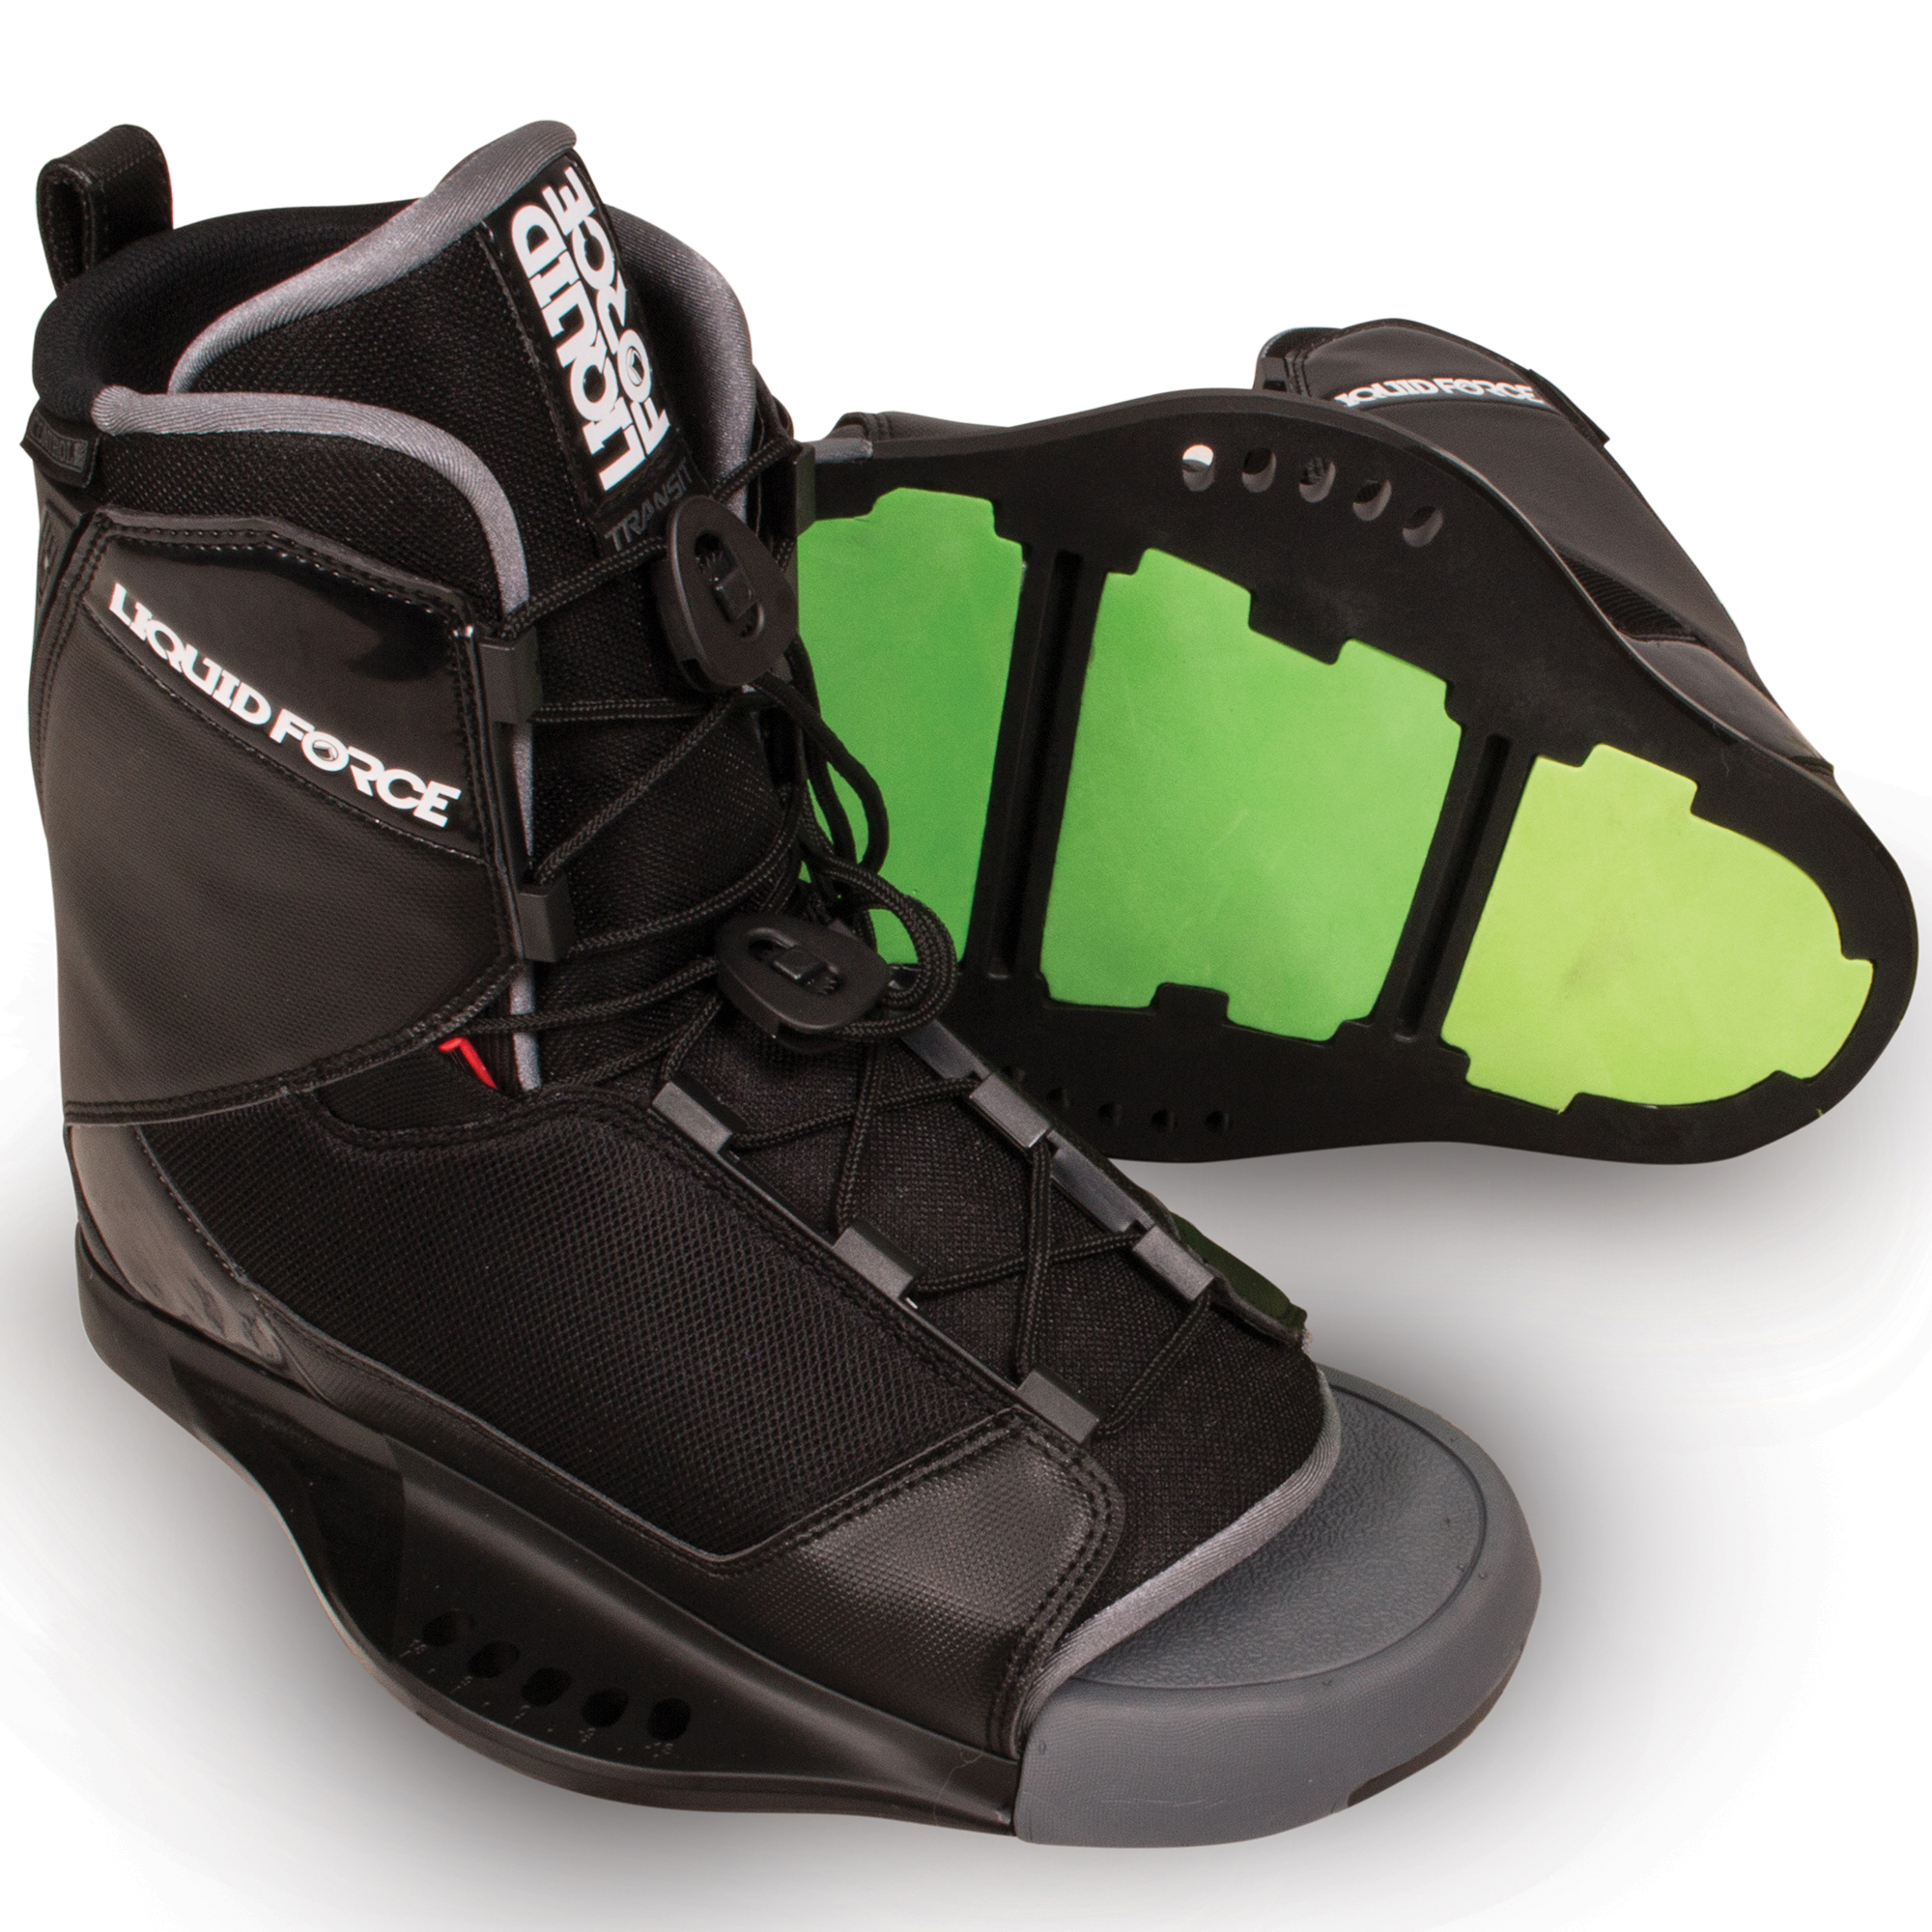 Liquid Force Witness Wakeboard With Transit Bindings